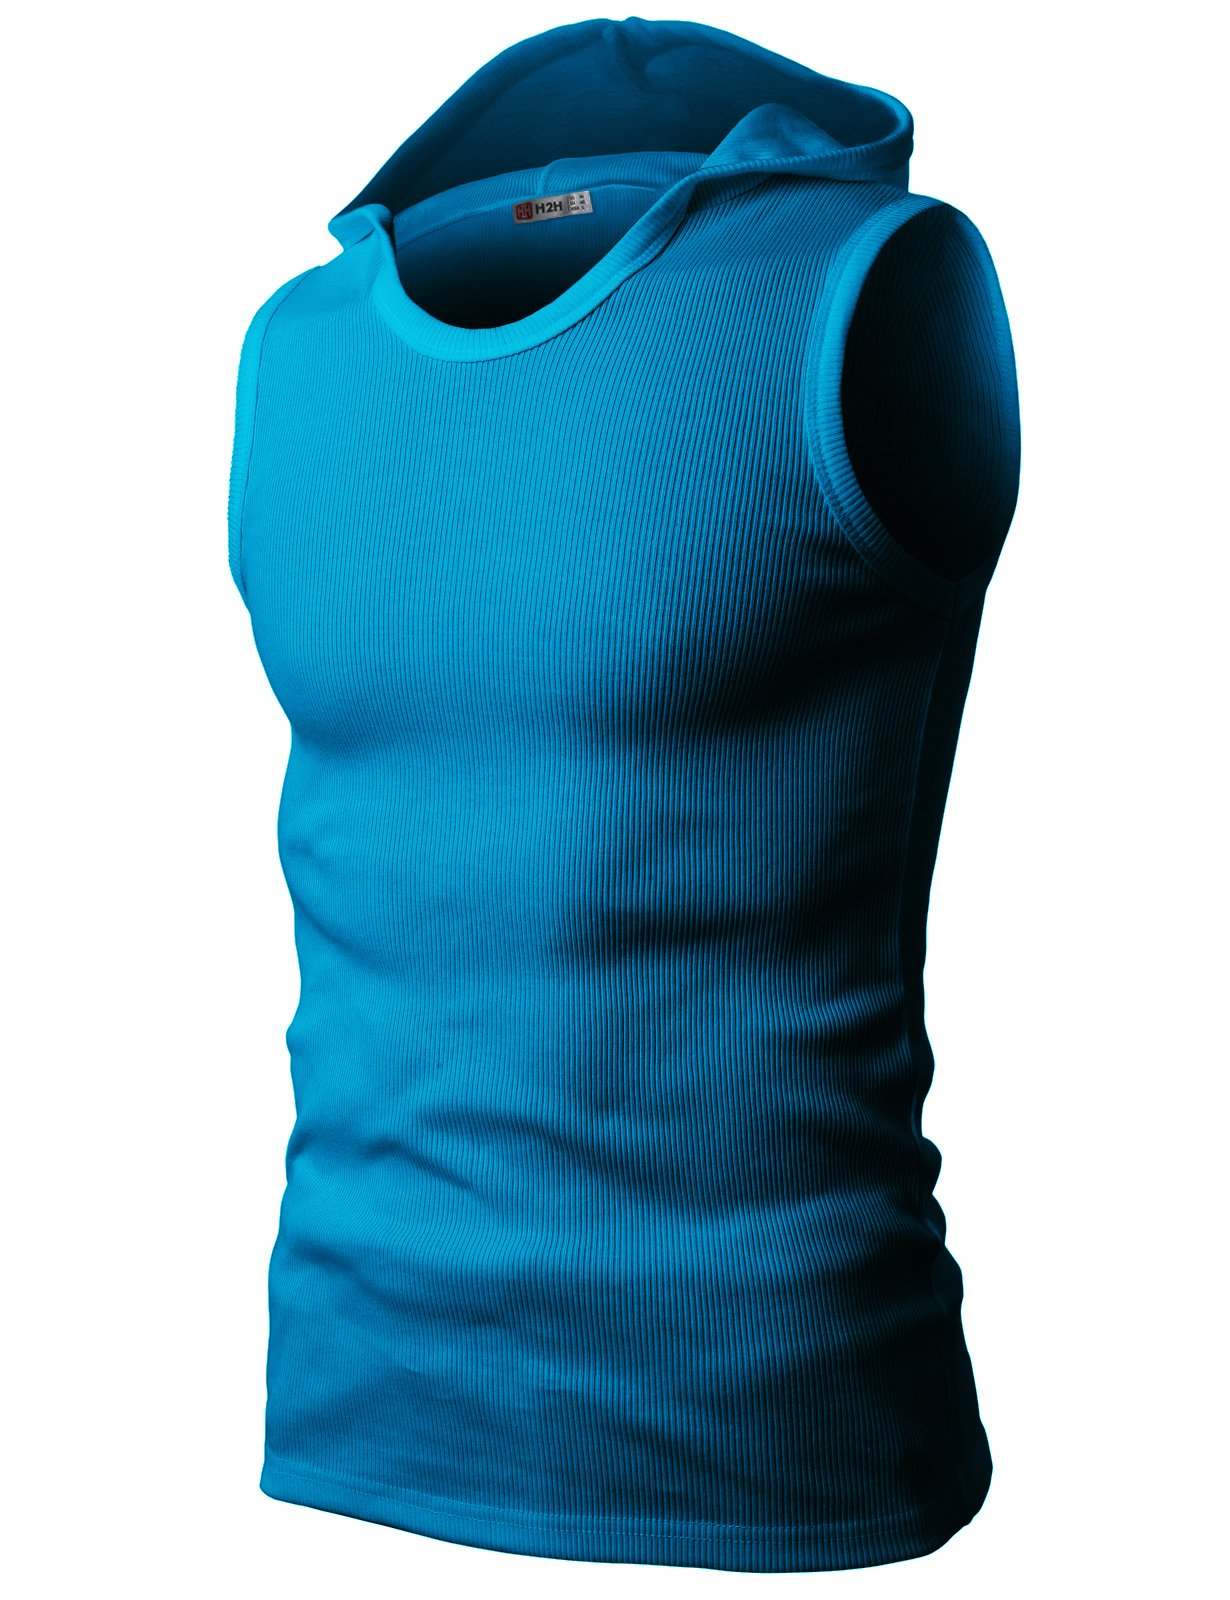 H2H Mens Fashionable Slim Fit Cotton Hooded Tank-Tops SkyBlue US S/Asia M (JPSK05)